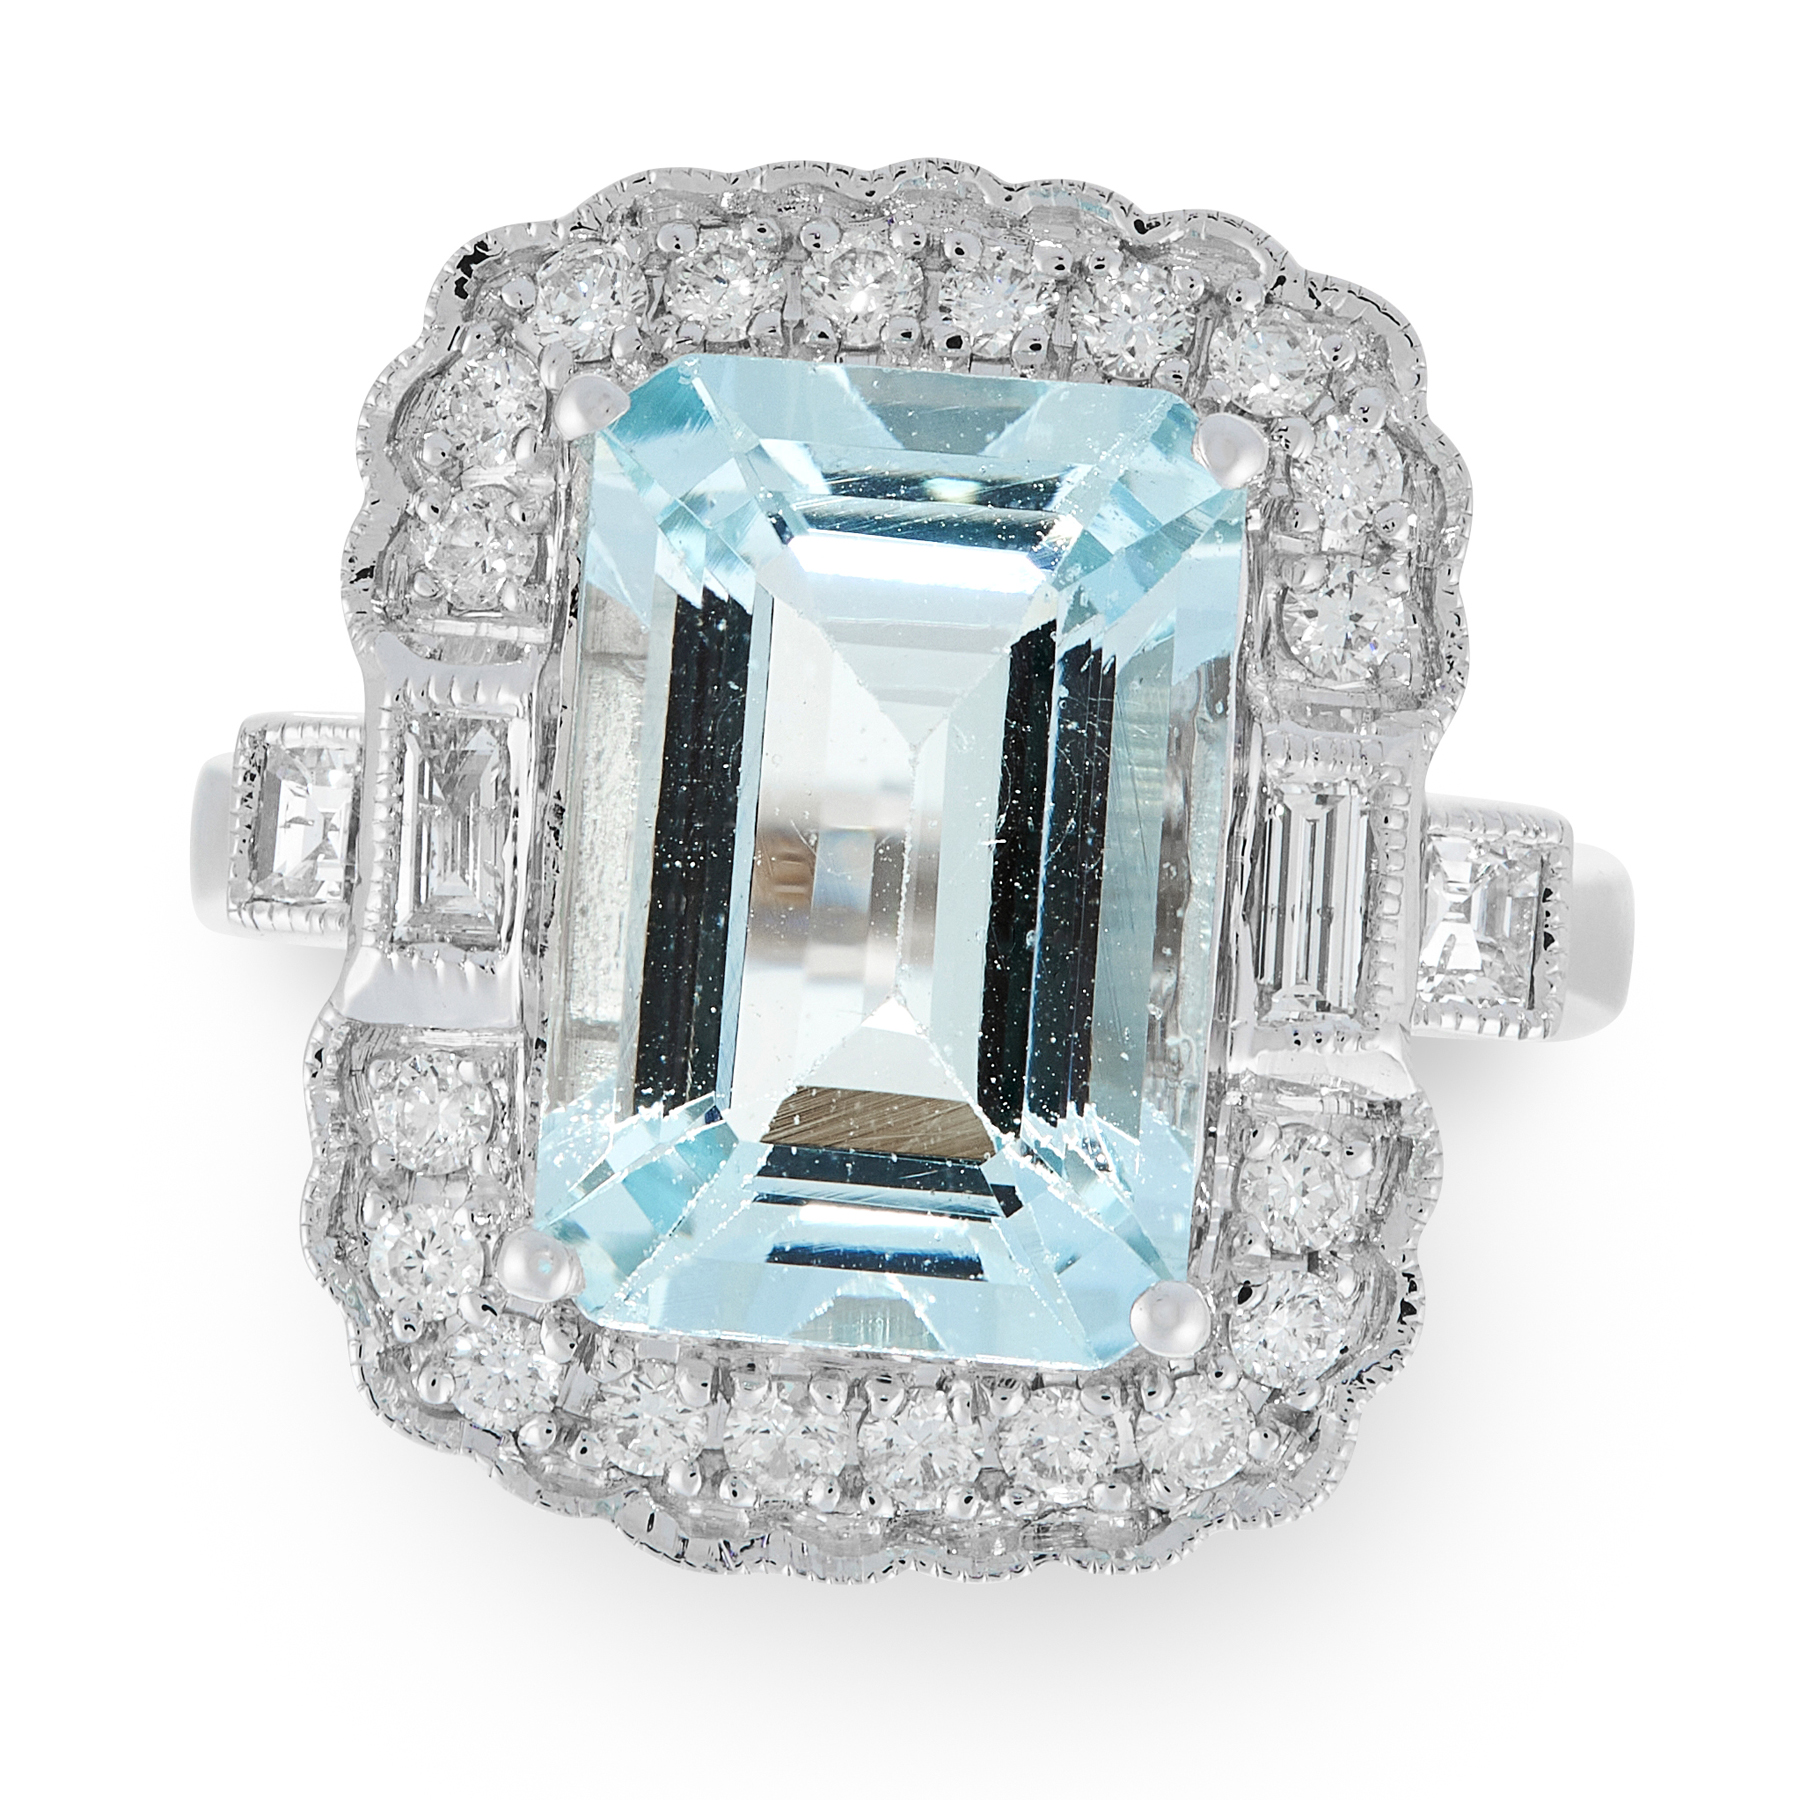 AN AQUAMARINE AND DIAMOND RING in 18ct white gold, set with an emerald cut aquamarine of 4.67 in a